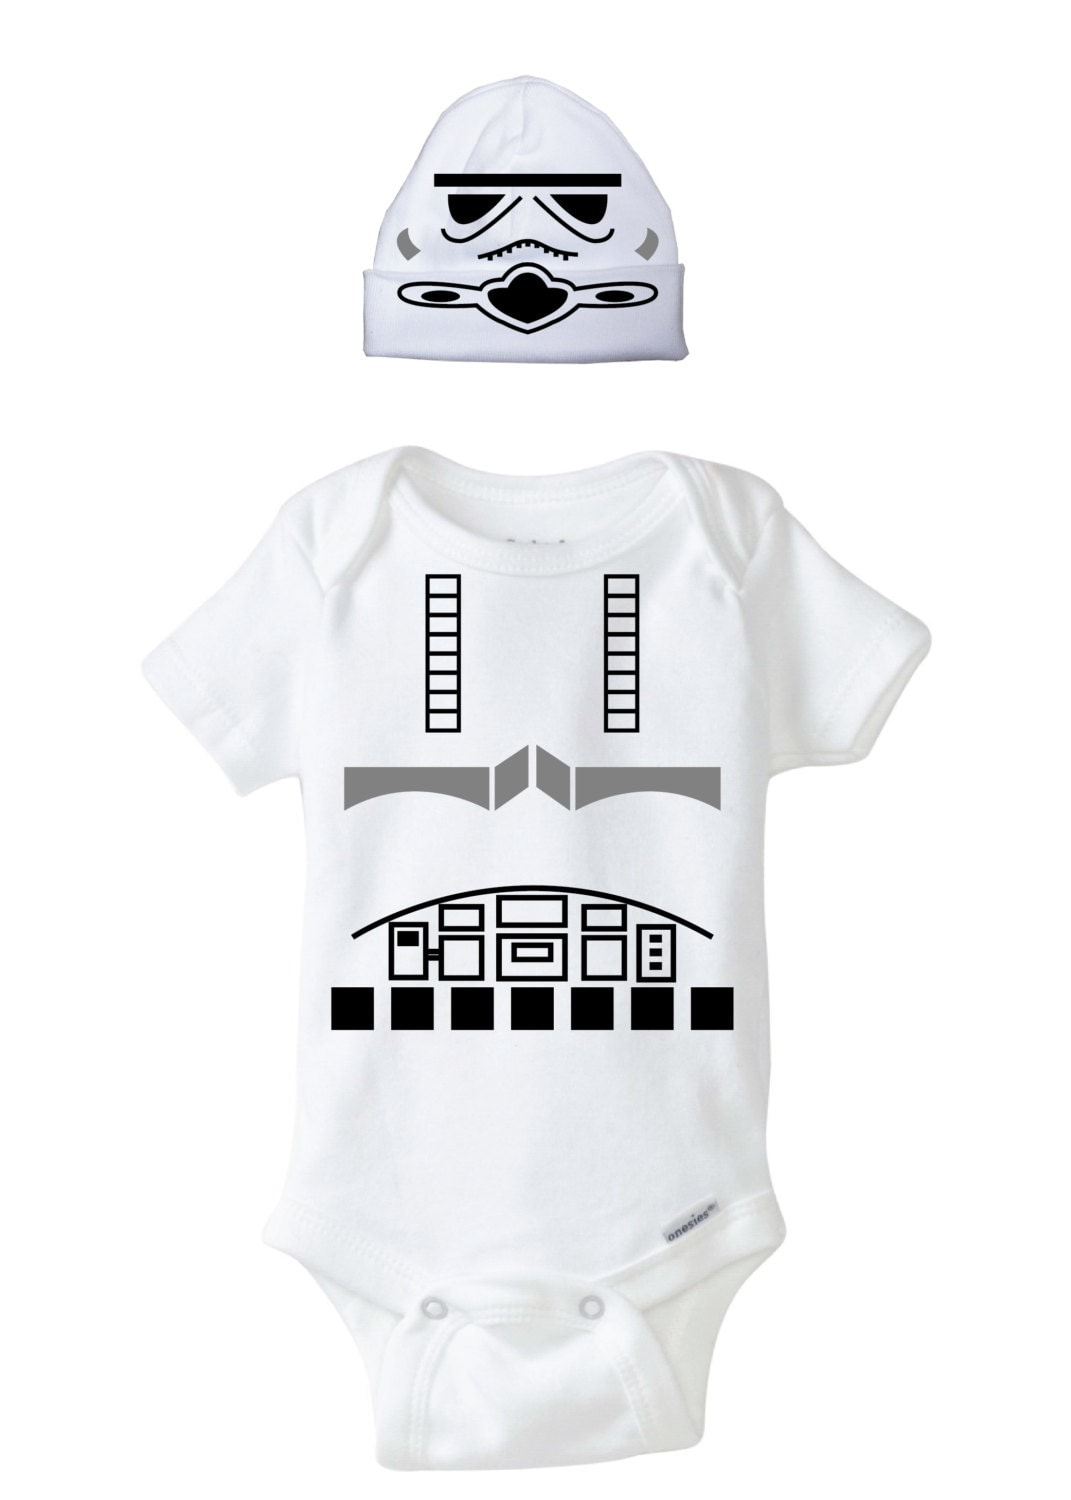 Stormtrooper Baby Onesie and Beanie Design, SVG, DXF, EPS ...